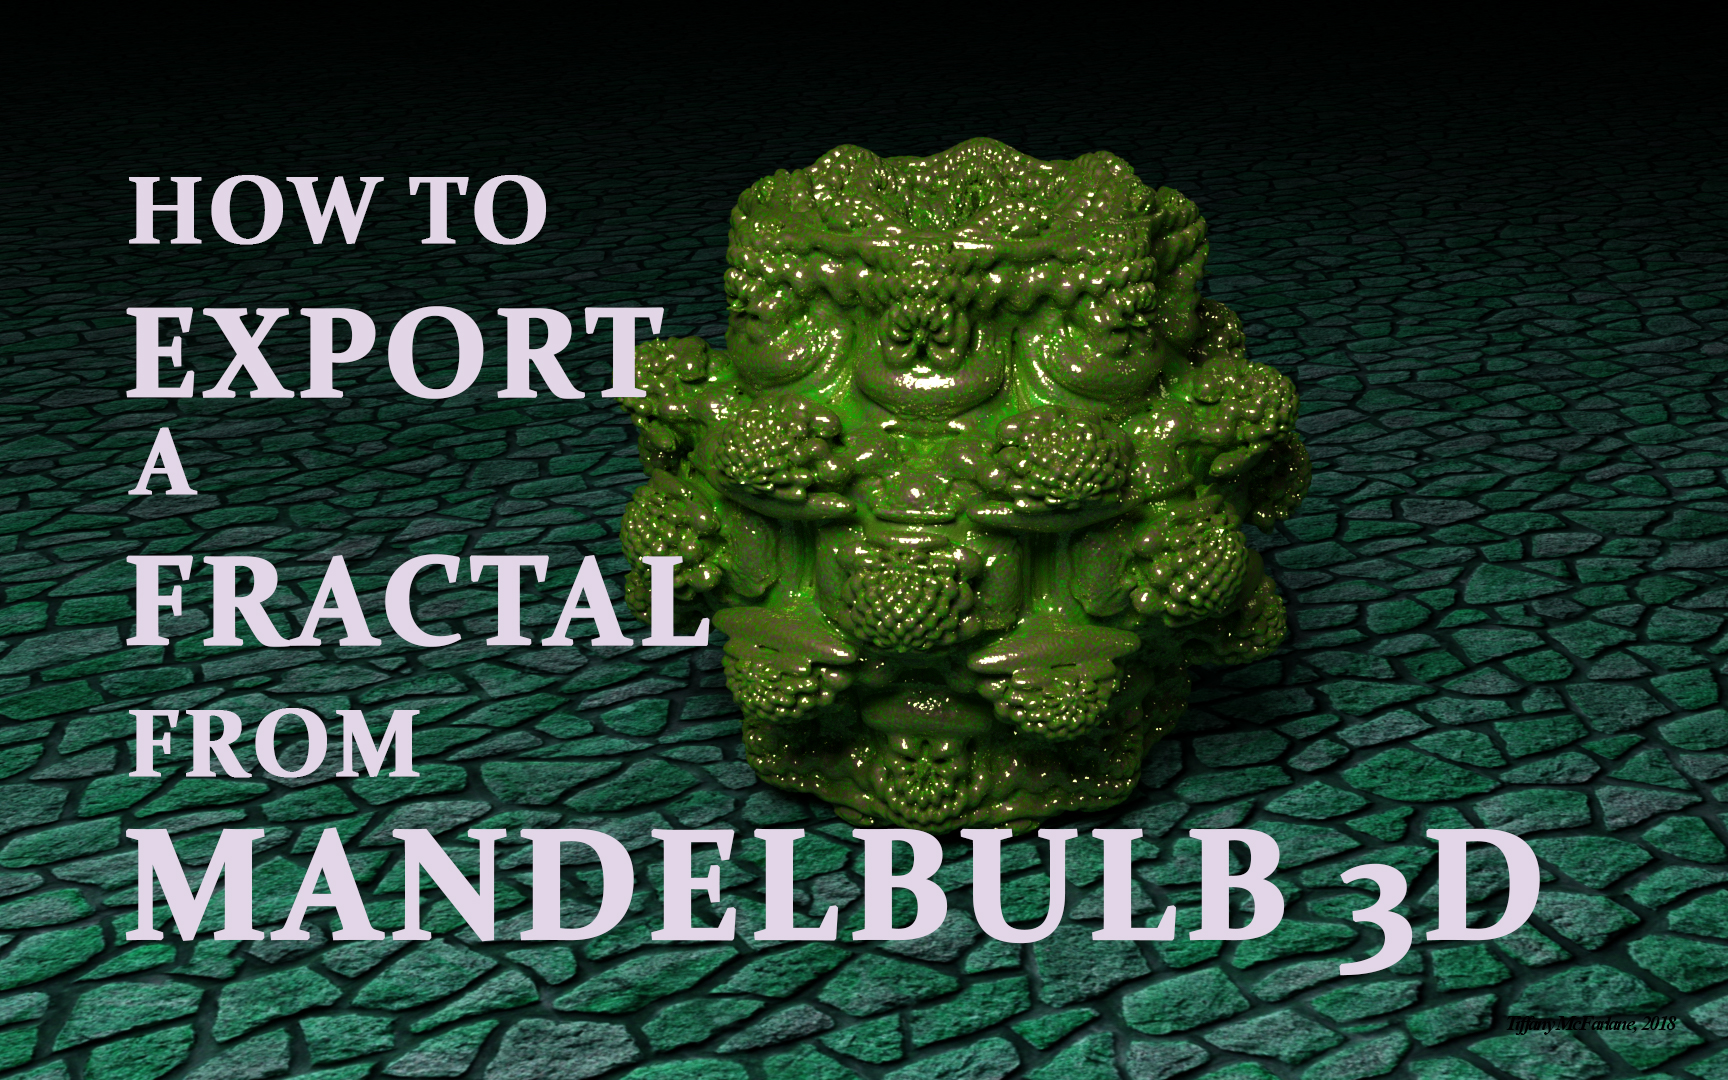 How To Export A Fractal From Mandelbulb 3D by tiffrmc720